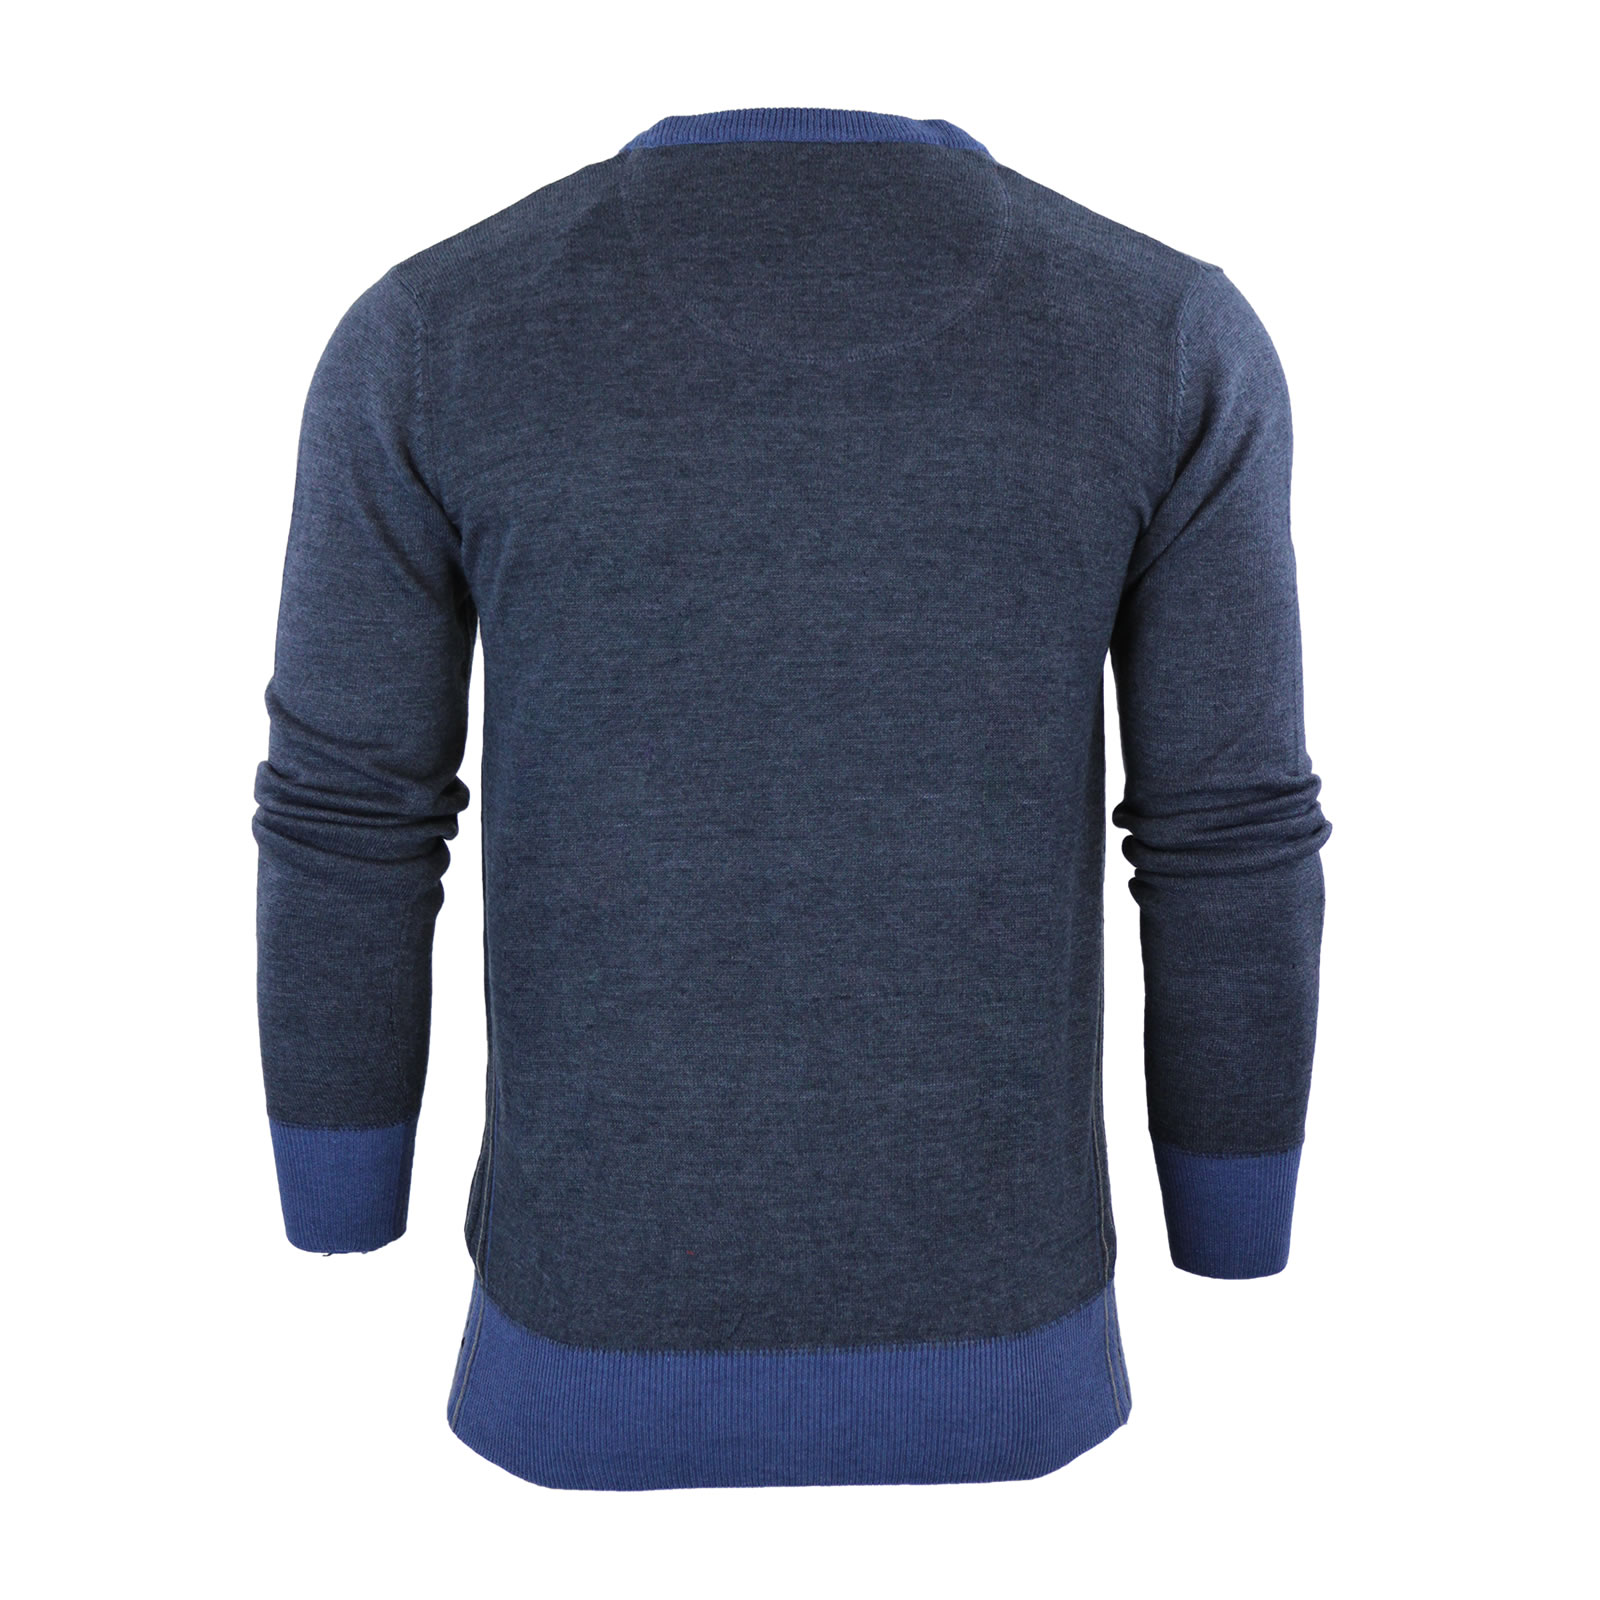 Mens Cardigan Jumper Ringspun Ponder Knitted Button Up Jumper ...